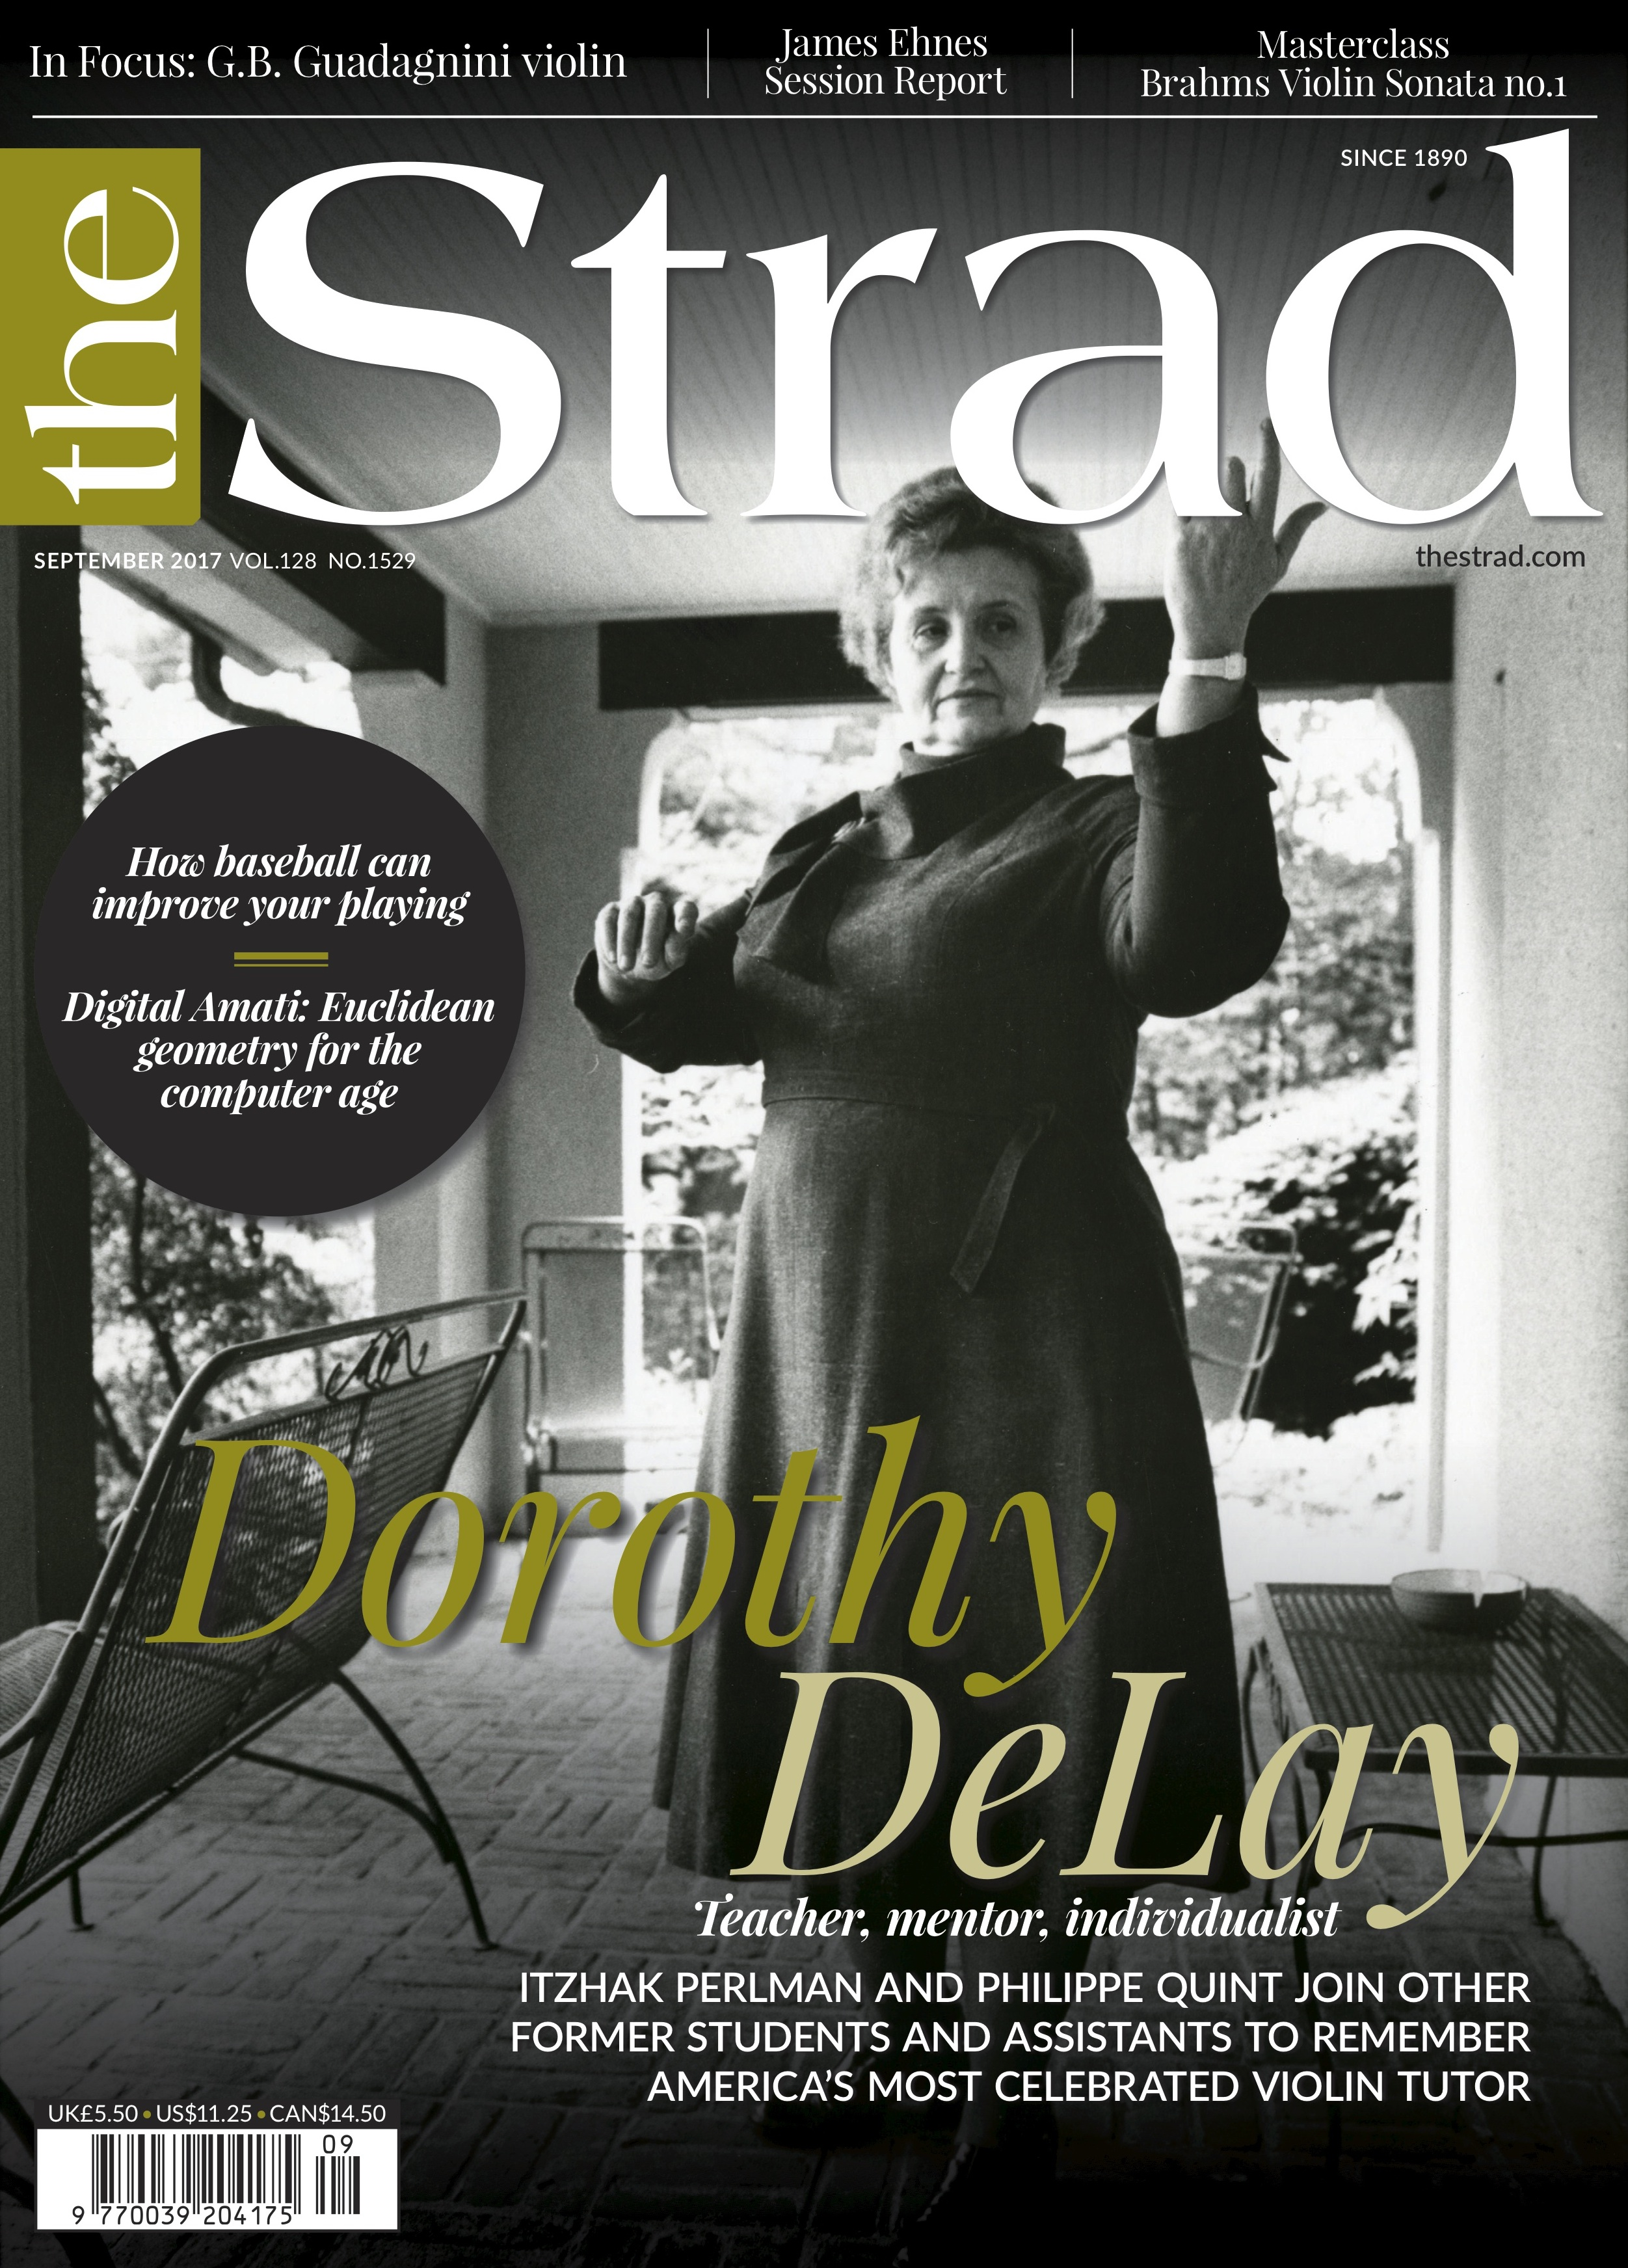 Celebrated American violin tutor Dorothy DeLay remembered by former students, including Itzhak Perlman and Philippe Quint